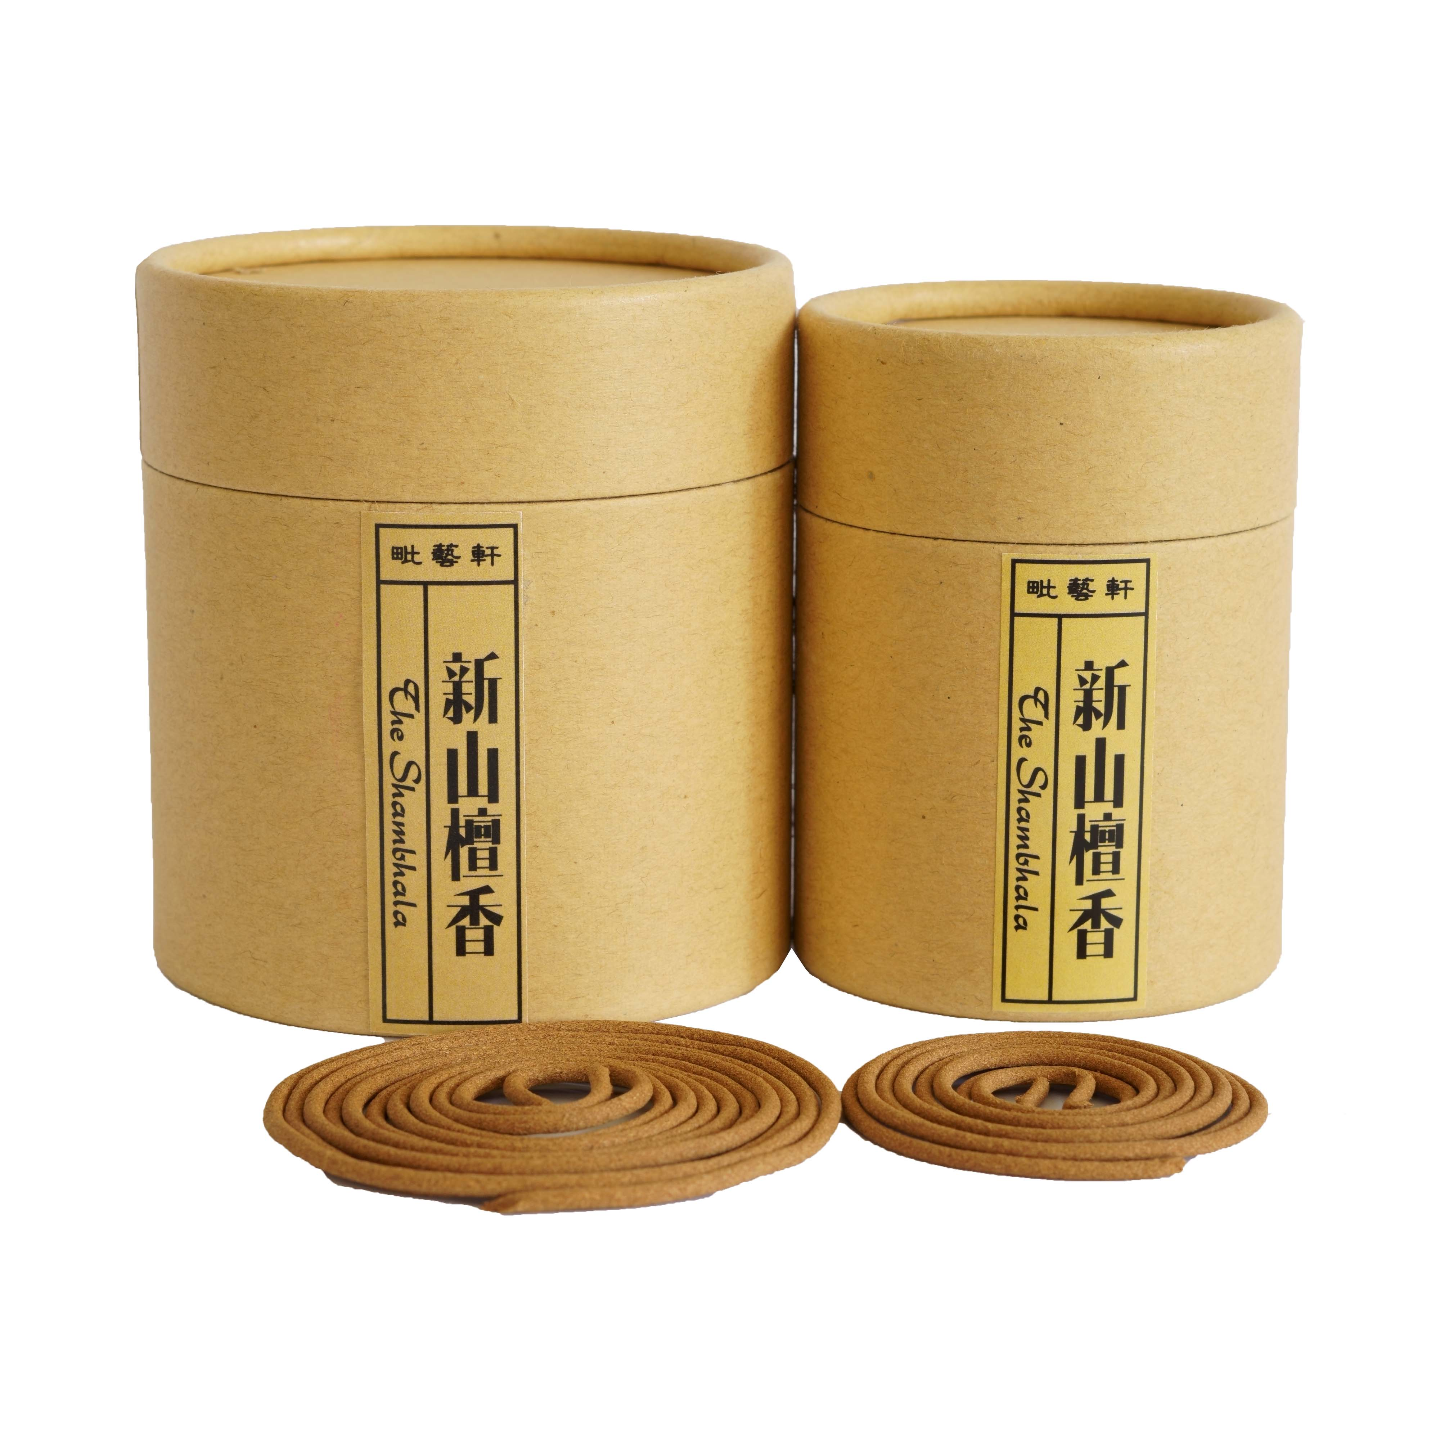 Sandalwood Incense Coils 新山檀盘香